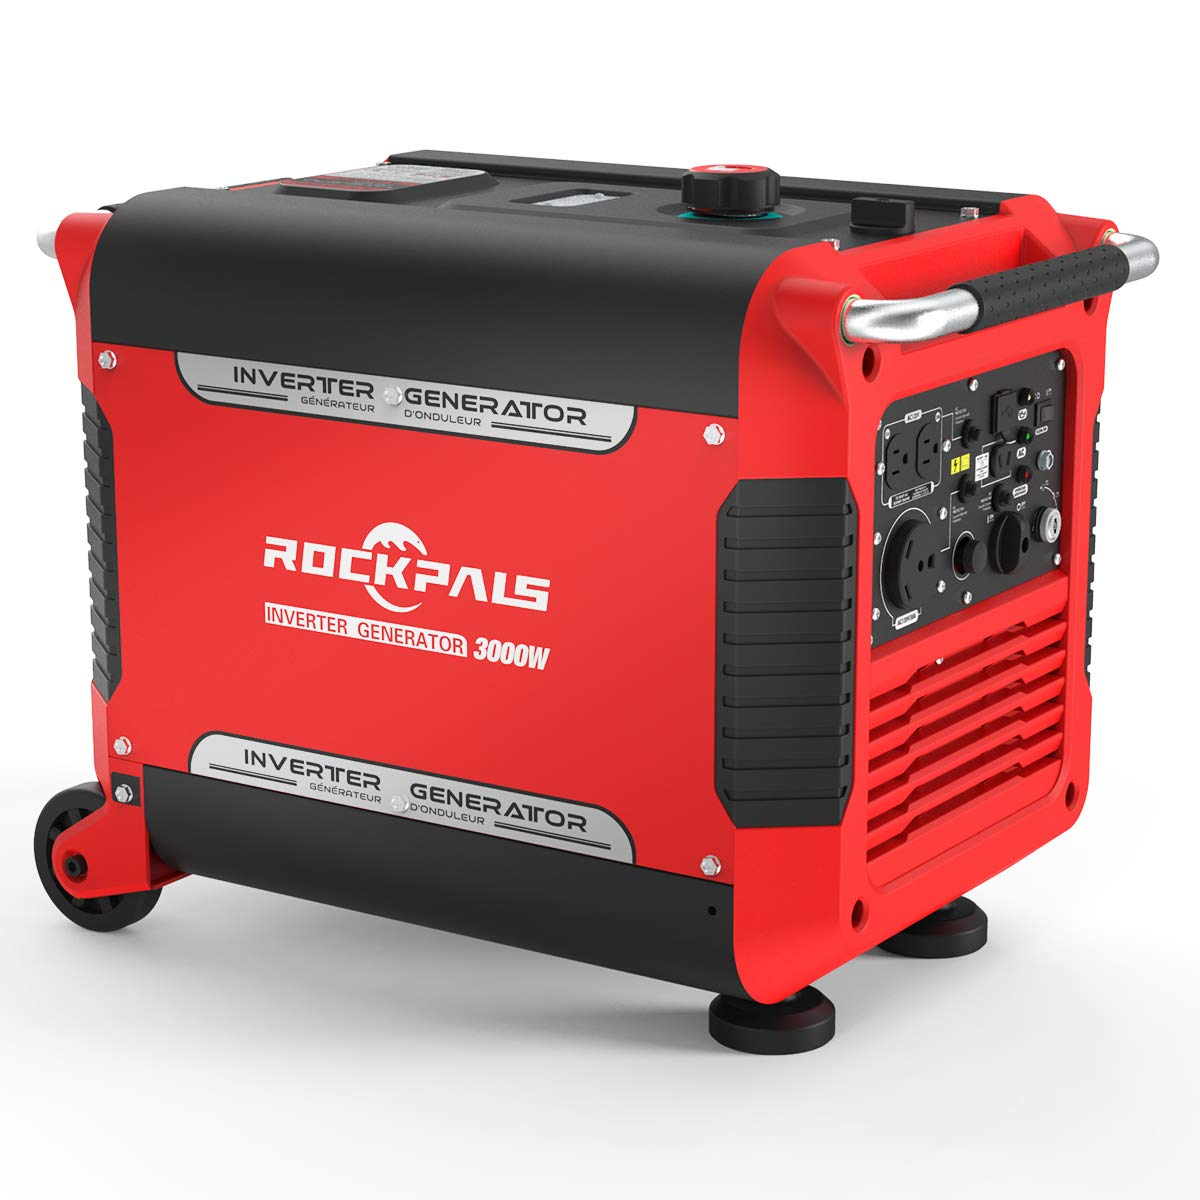 electric generator steam turbine amazoncom rockpals 3000watt rv ready portable inverter generator electric start super quiet gasoline powered generator carb compliant ecomode